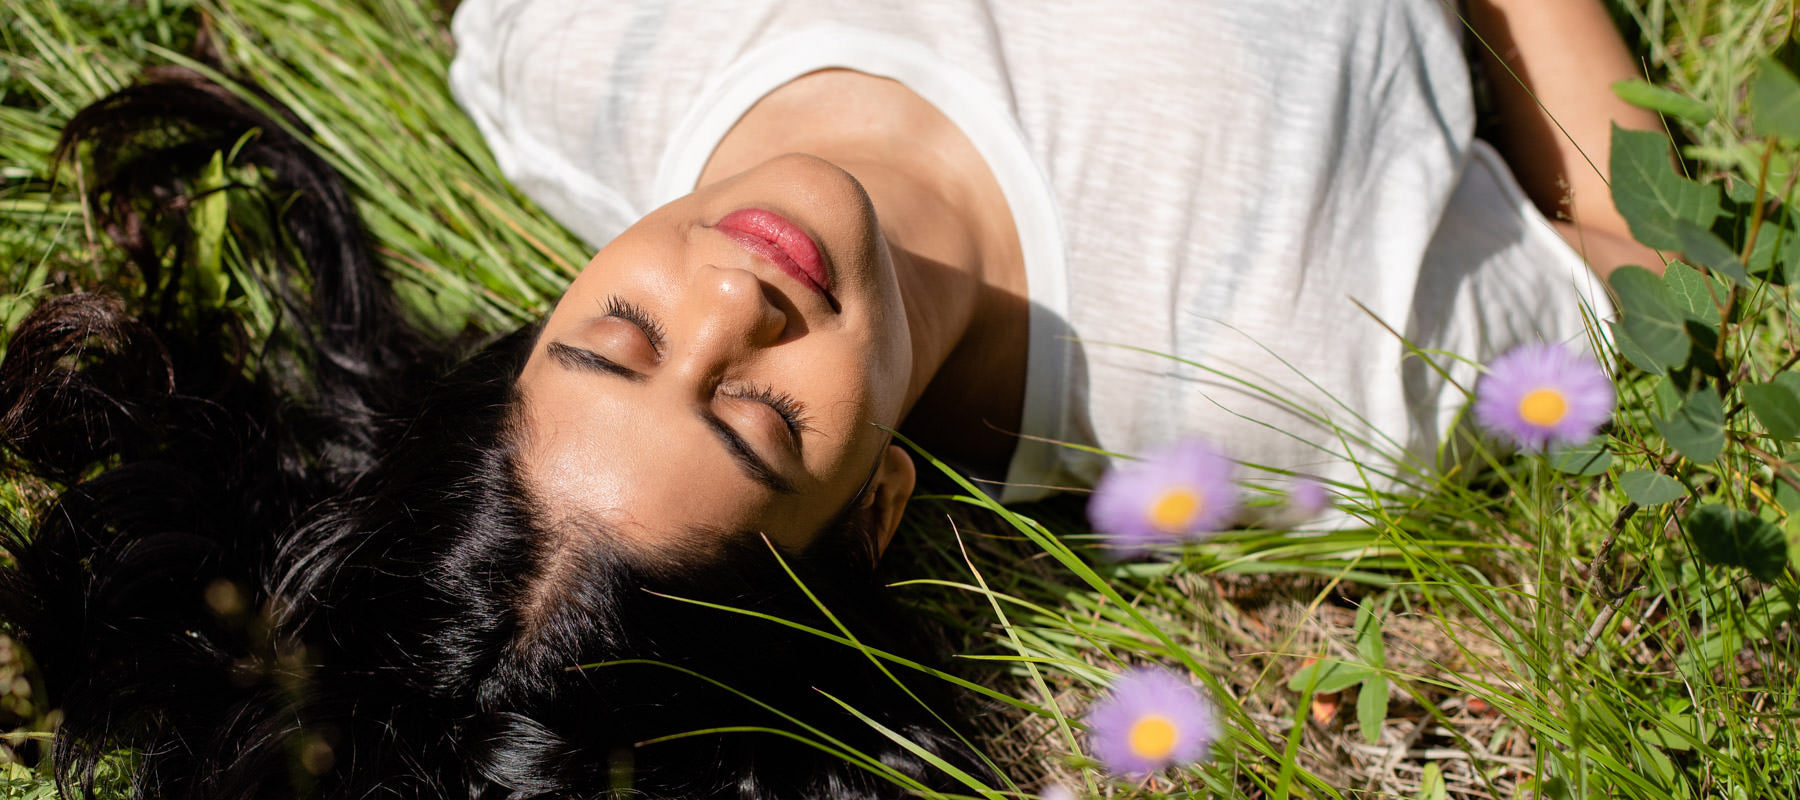 woman lying in the grass and wildflowers.